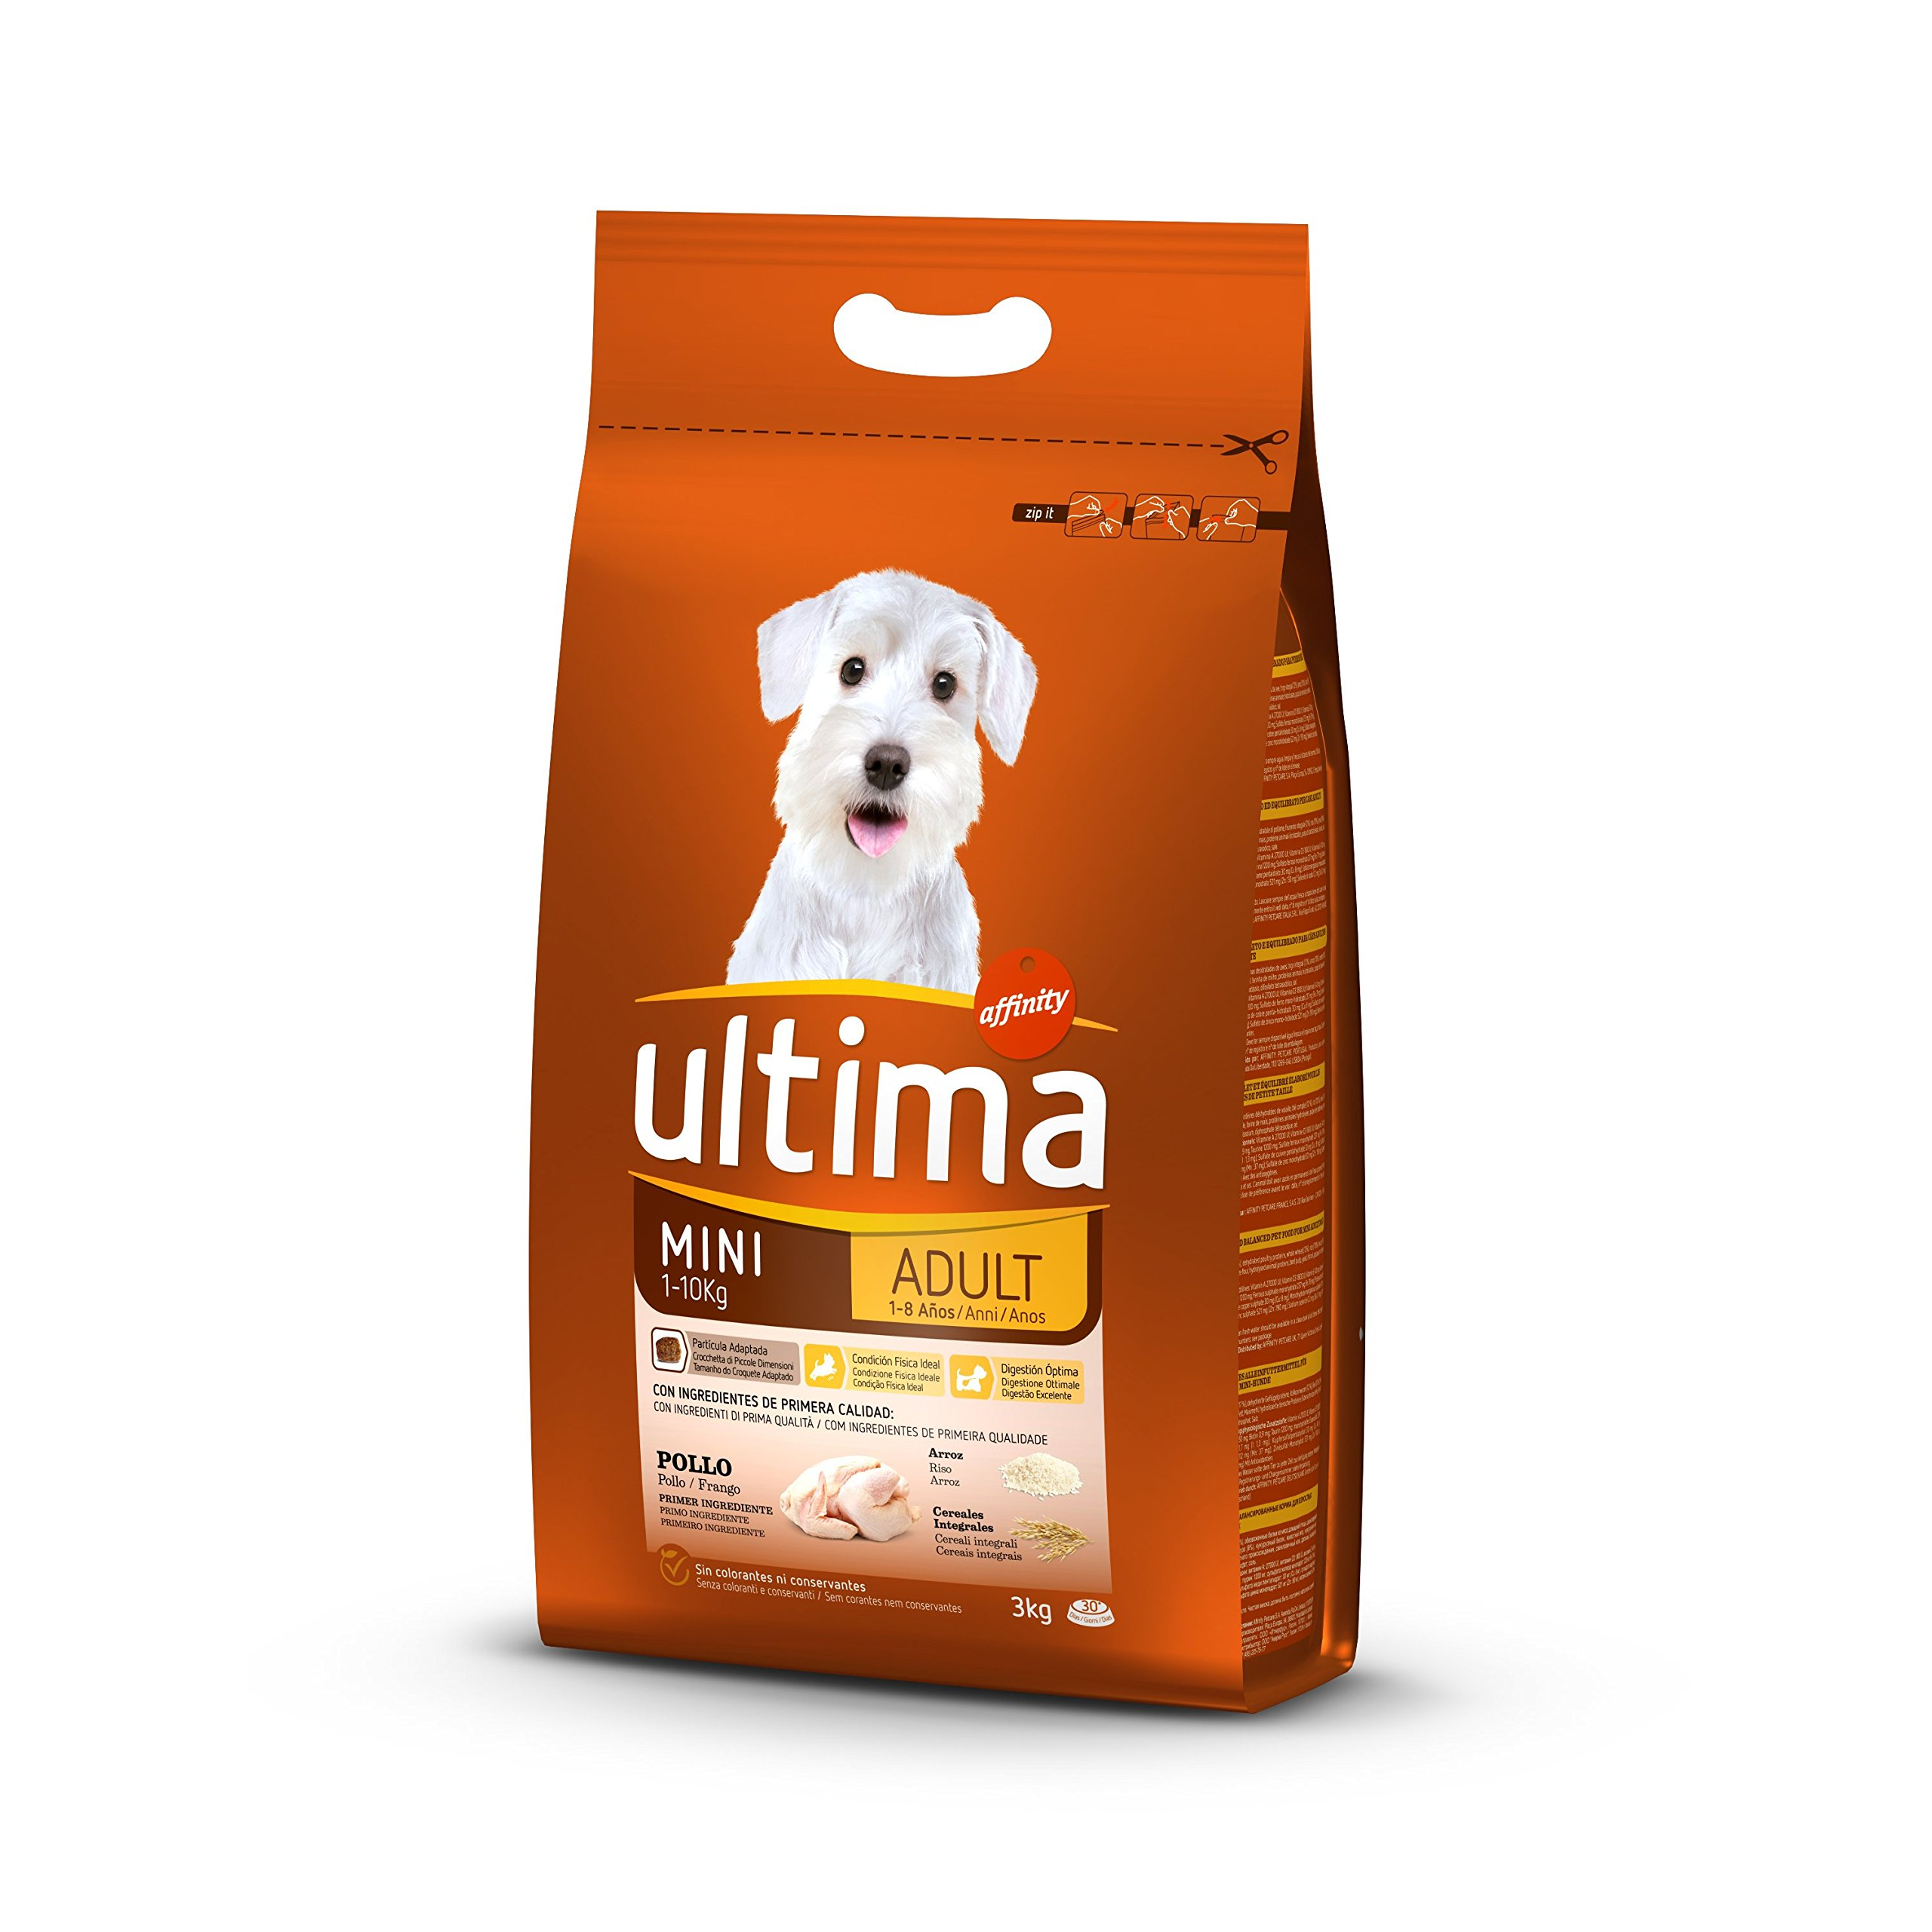 Ultima Pienso para Perros Mini Adultos con Pollo y Arroz product image